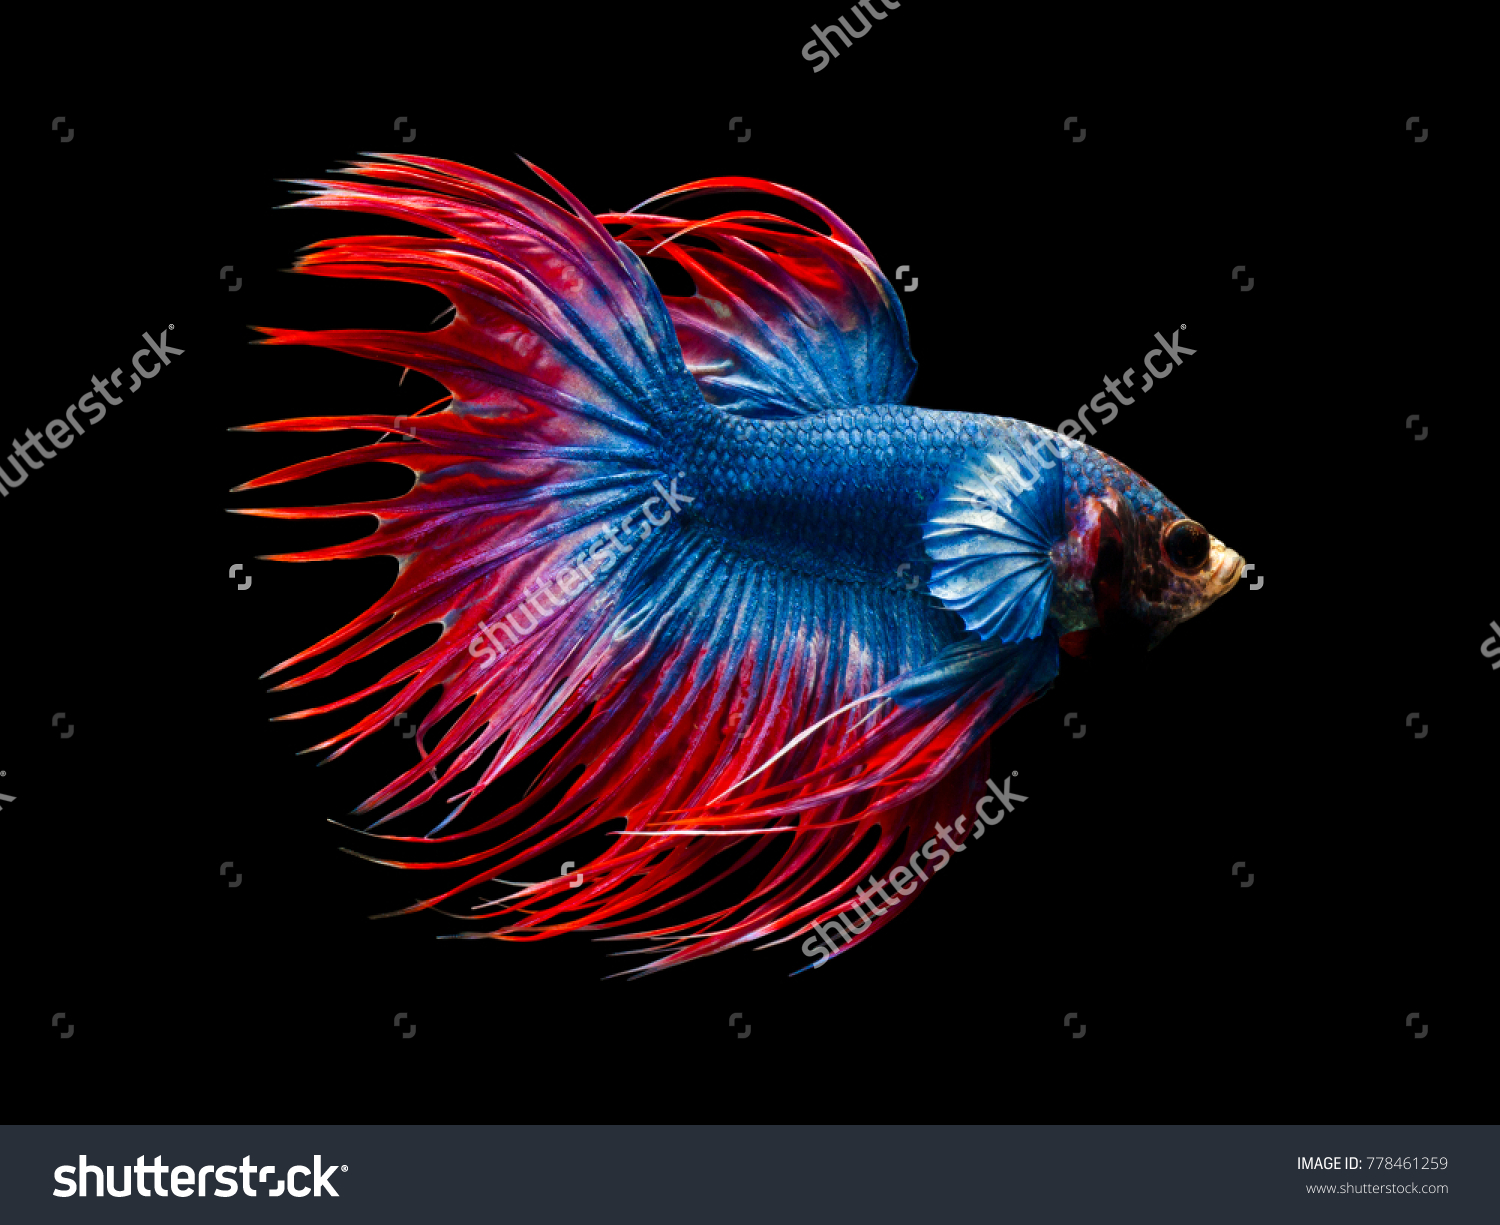 Multi Color Siamese Fighting Fish Crowntailfighting Stock Photo ...